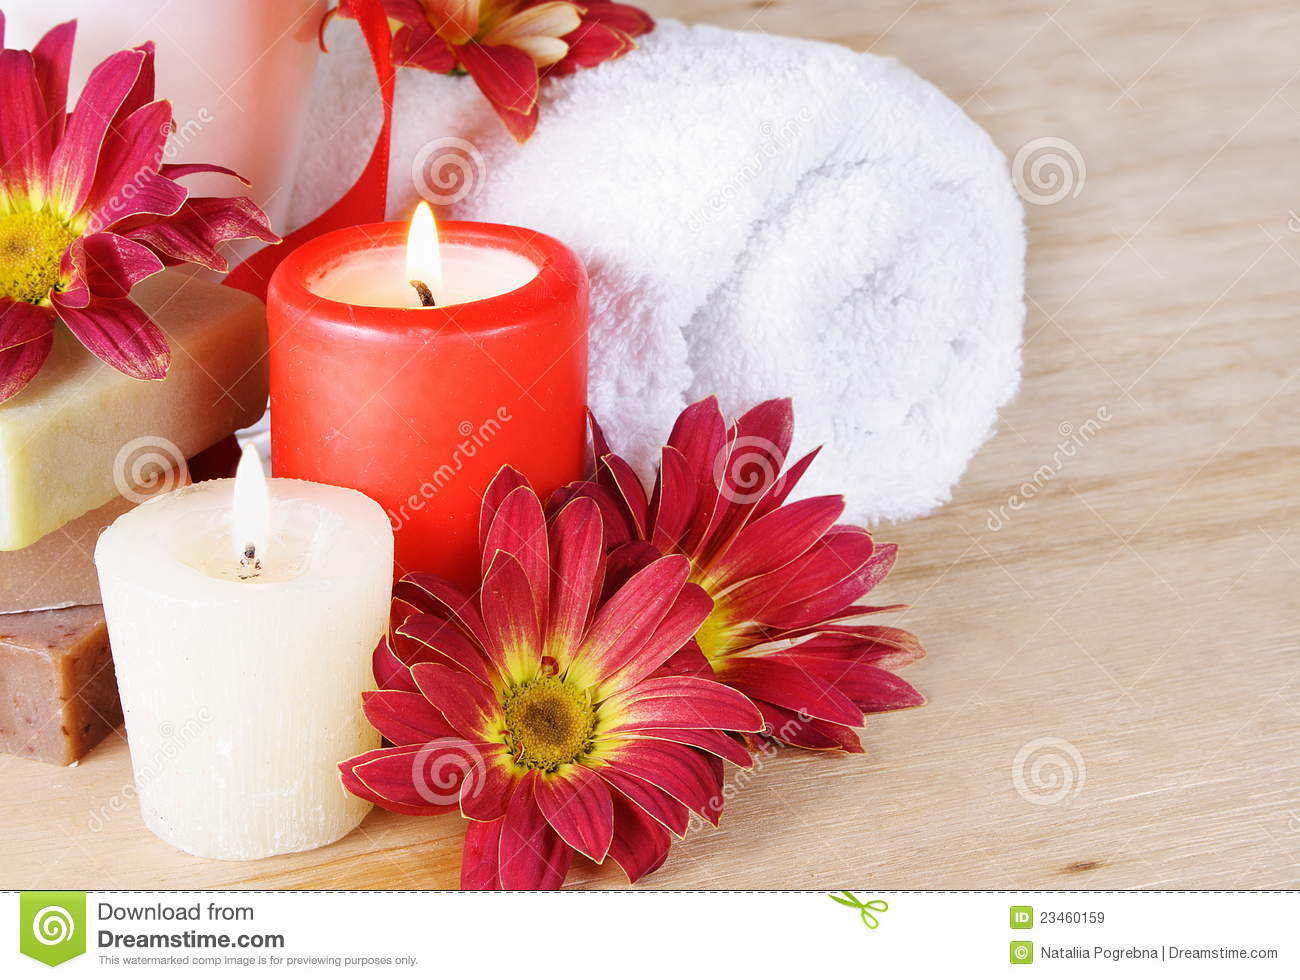 Candles and flow